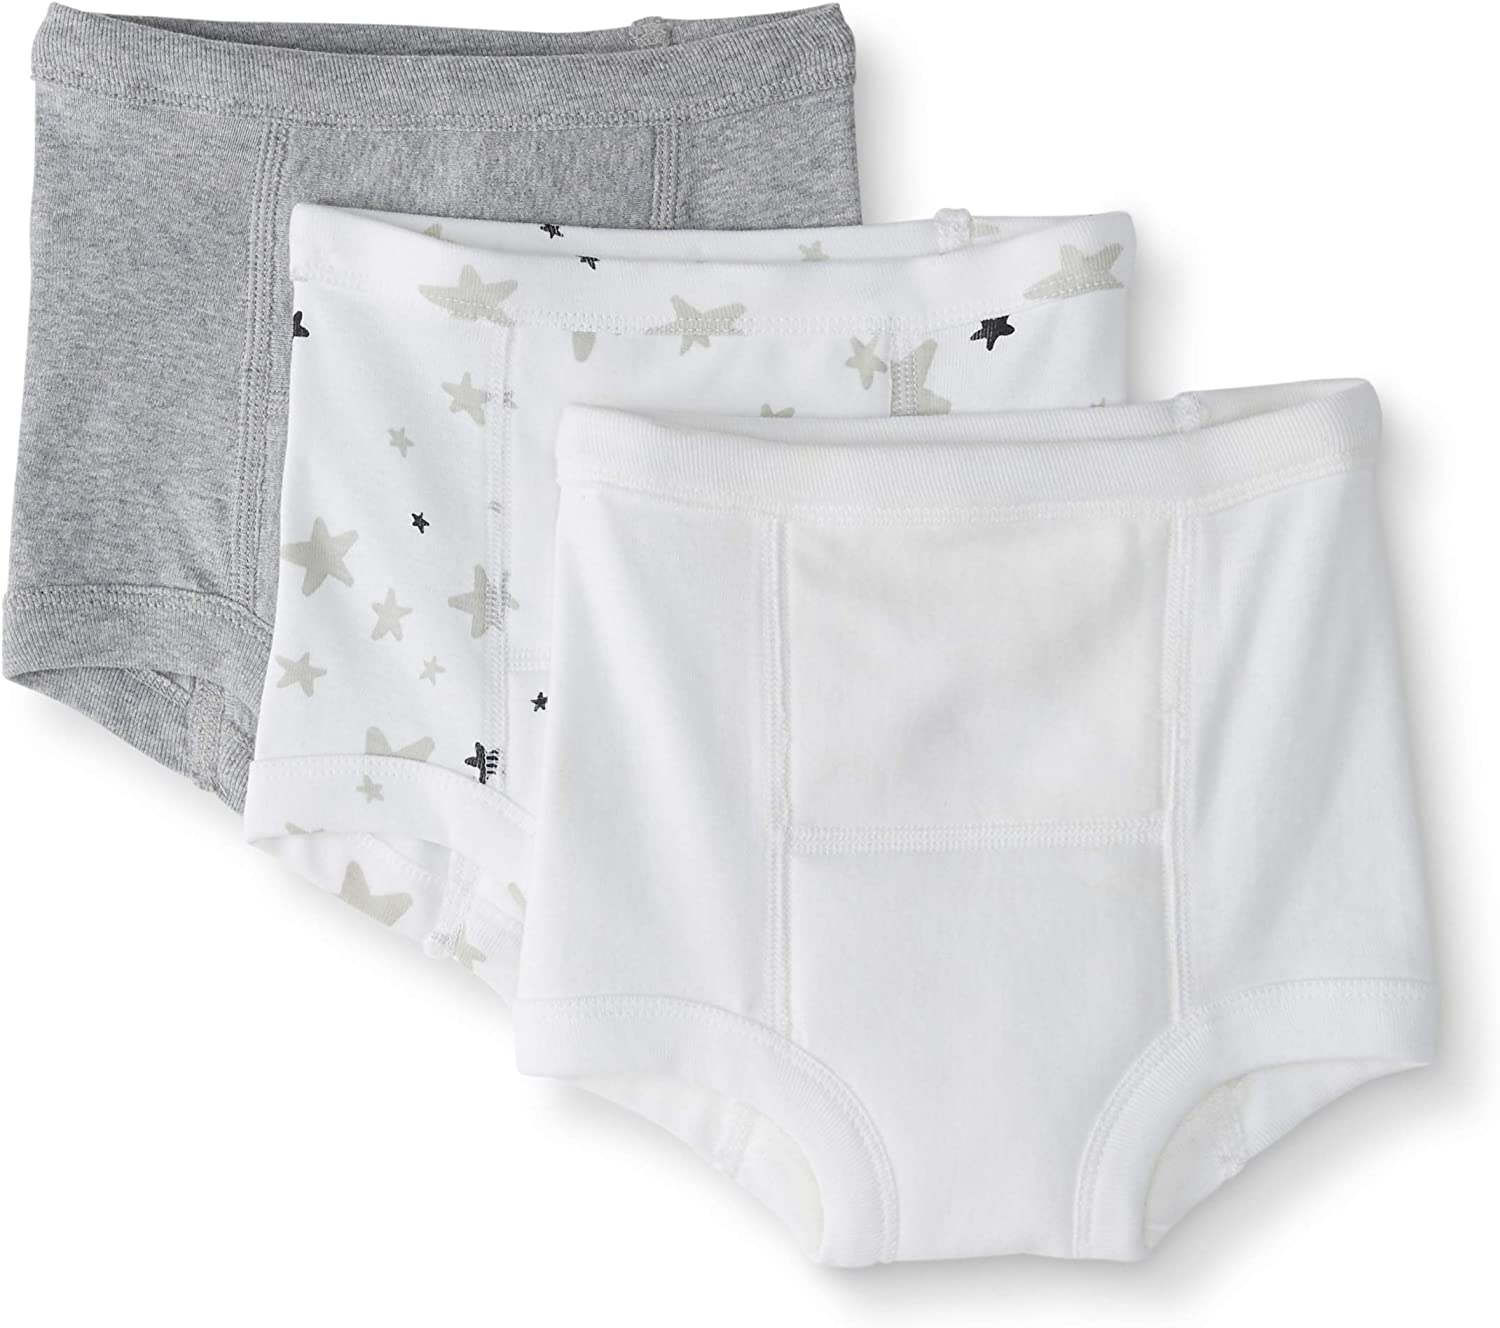 Moon and Back by Hanna Andersson Toddler Boys and Girls 3-Pack Training Underwear